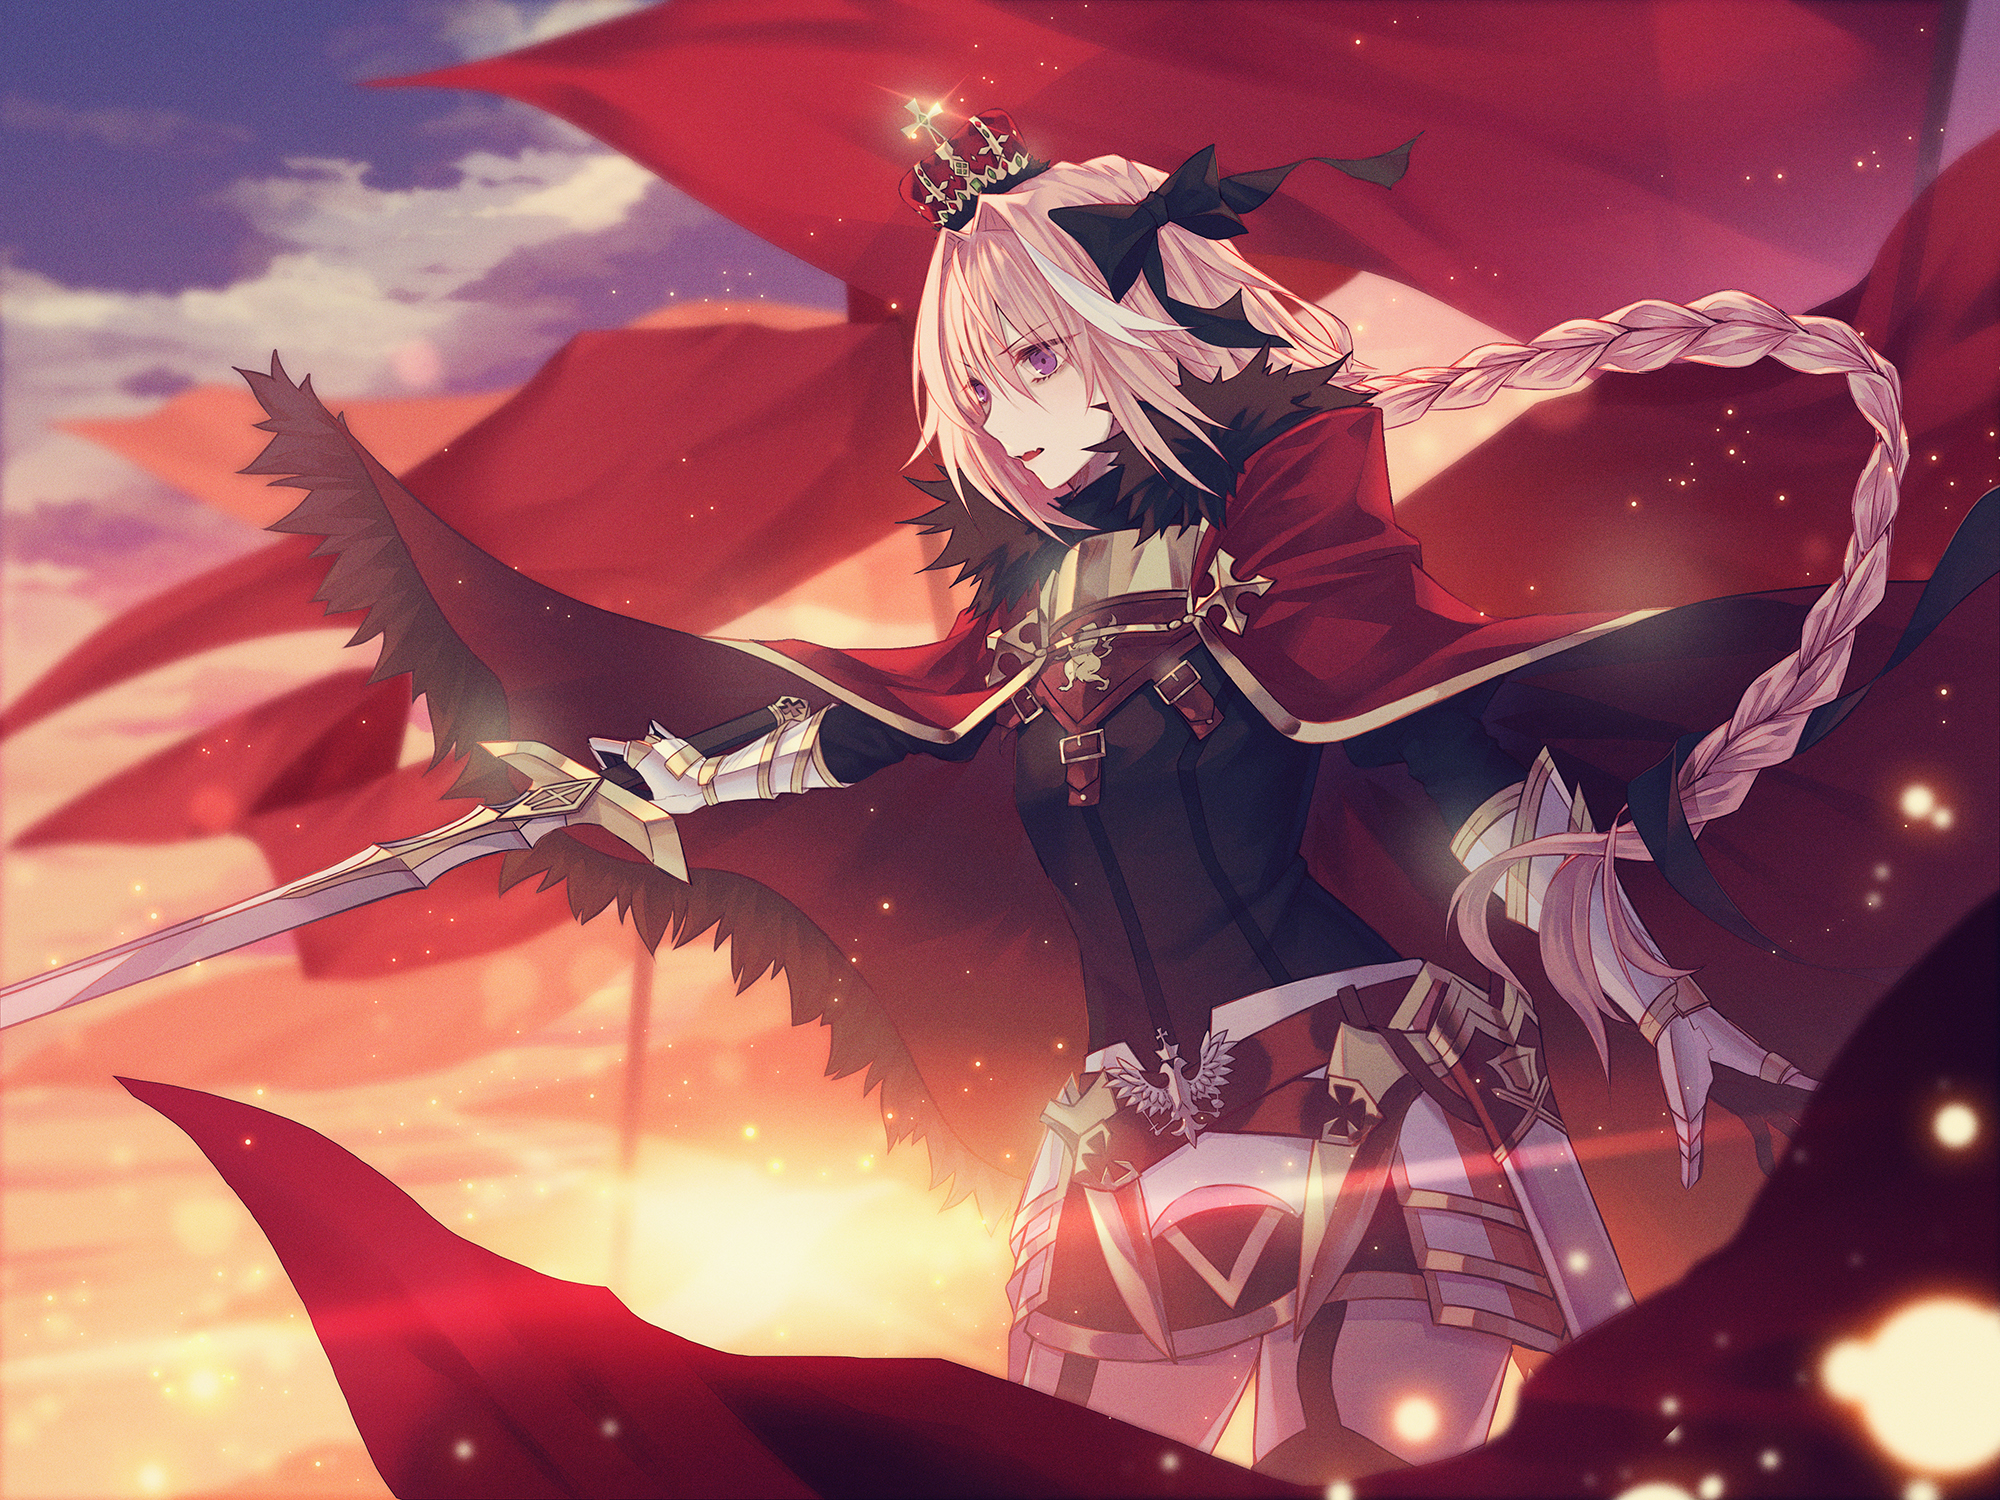 Black Order Is Here Hd Wallpaper: 1559 Fate Grand Order HD Wallpapers